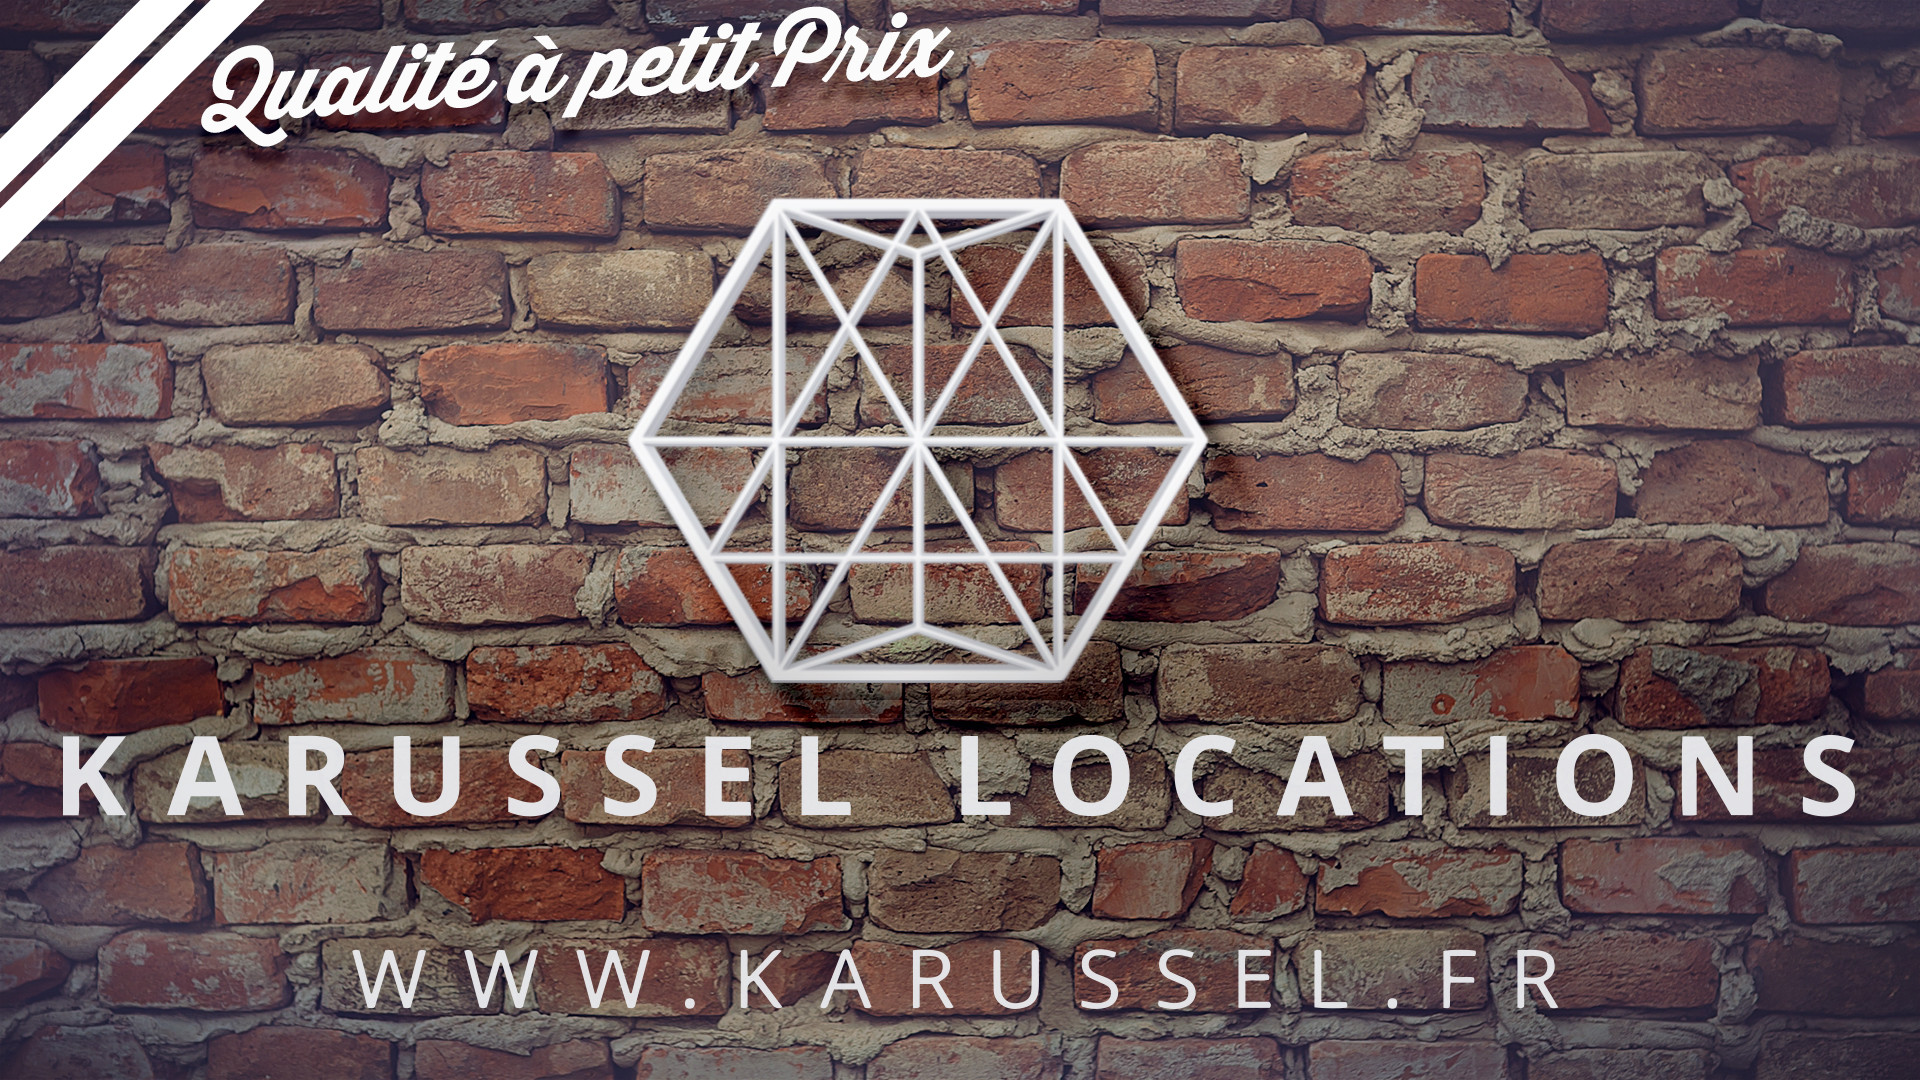 Contact Karussel Locations